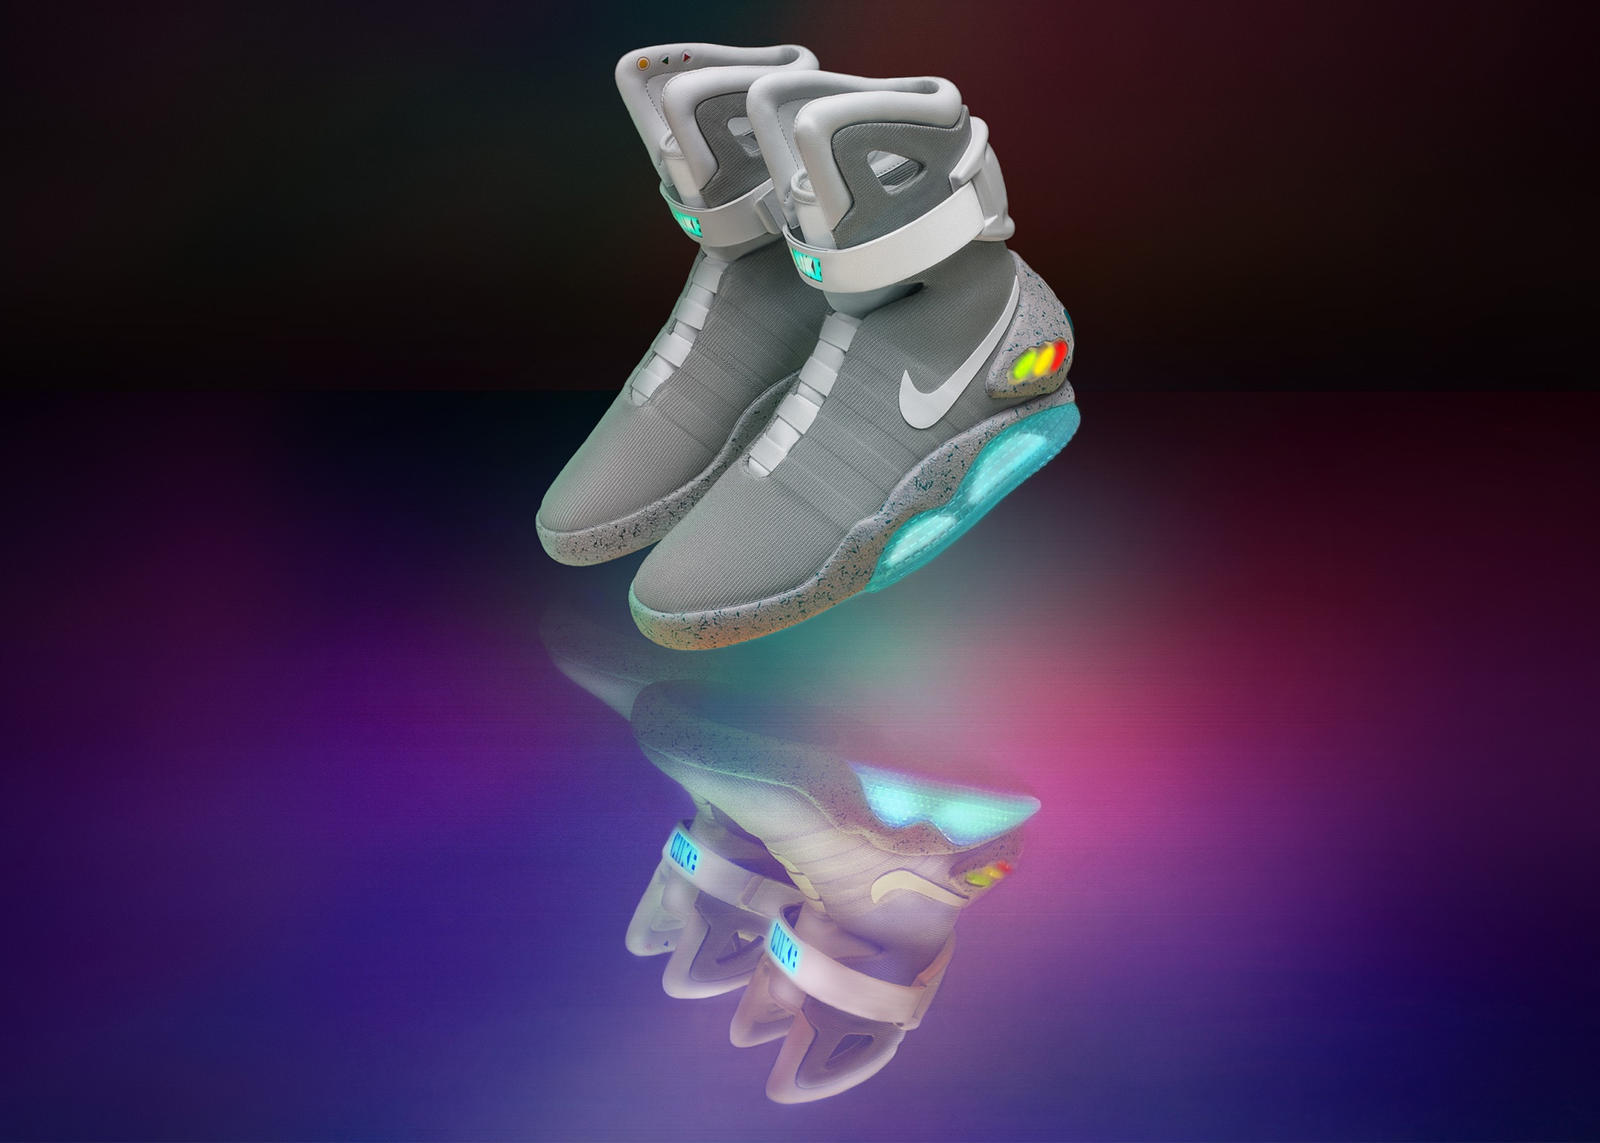 37dabc40adcd91 How to Get the 2016 Nike Mag - Nike News